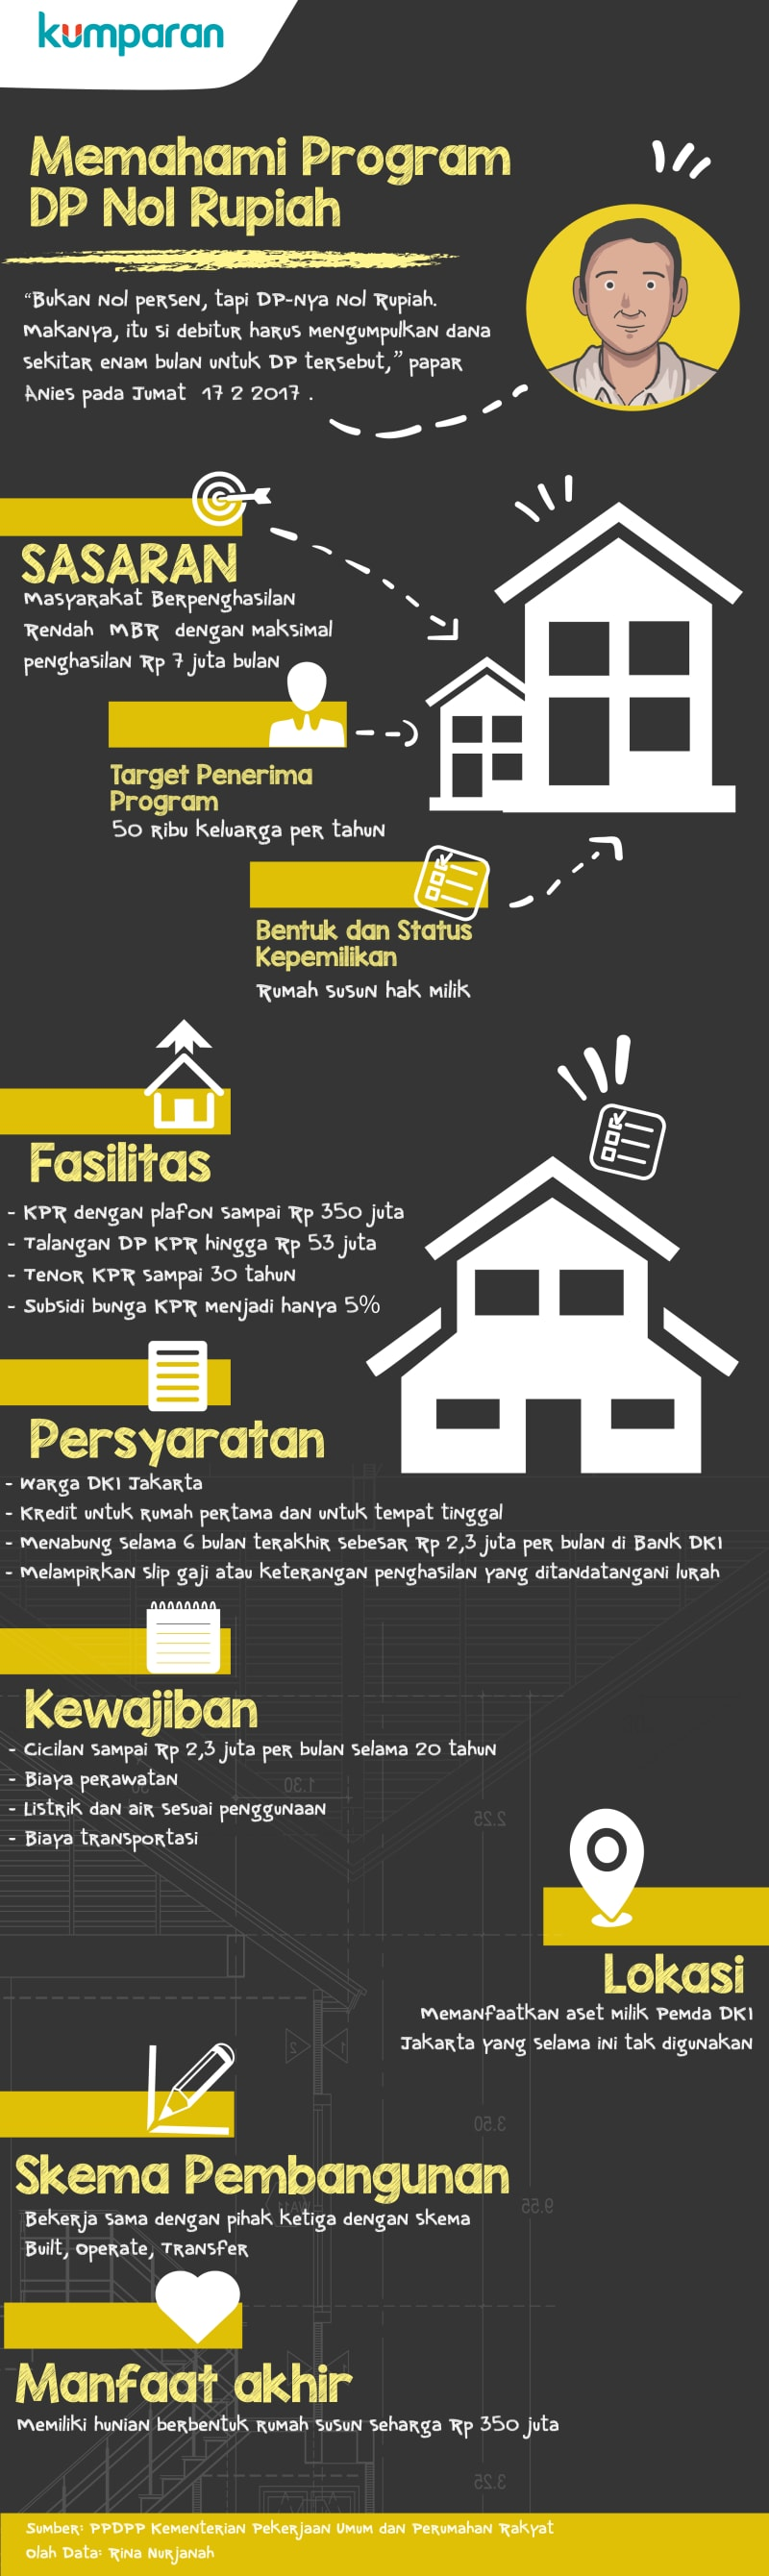 Infografis Program DP Nol Rupiah